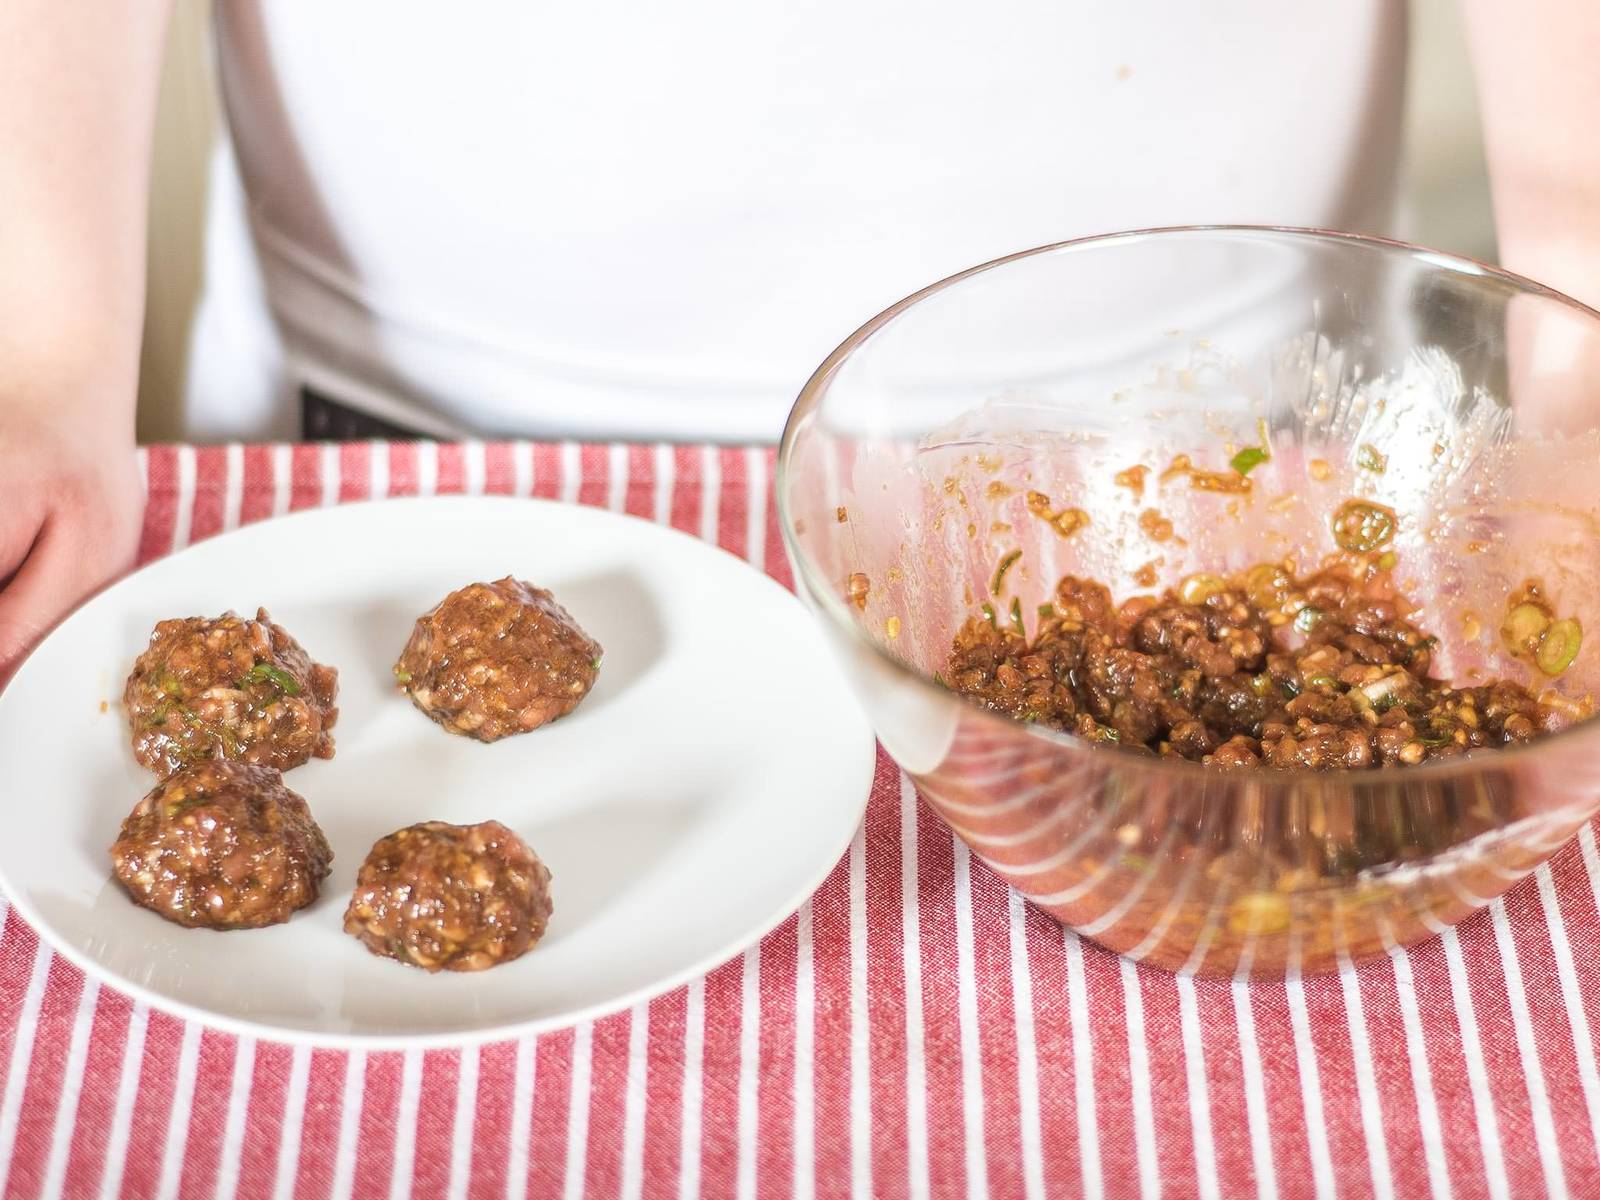 Boil water. Make small meat balls out of the mixture. Here it helps if hands are moistened with water to prevent the balls from sticking. Alternatively, use two teaspoons.